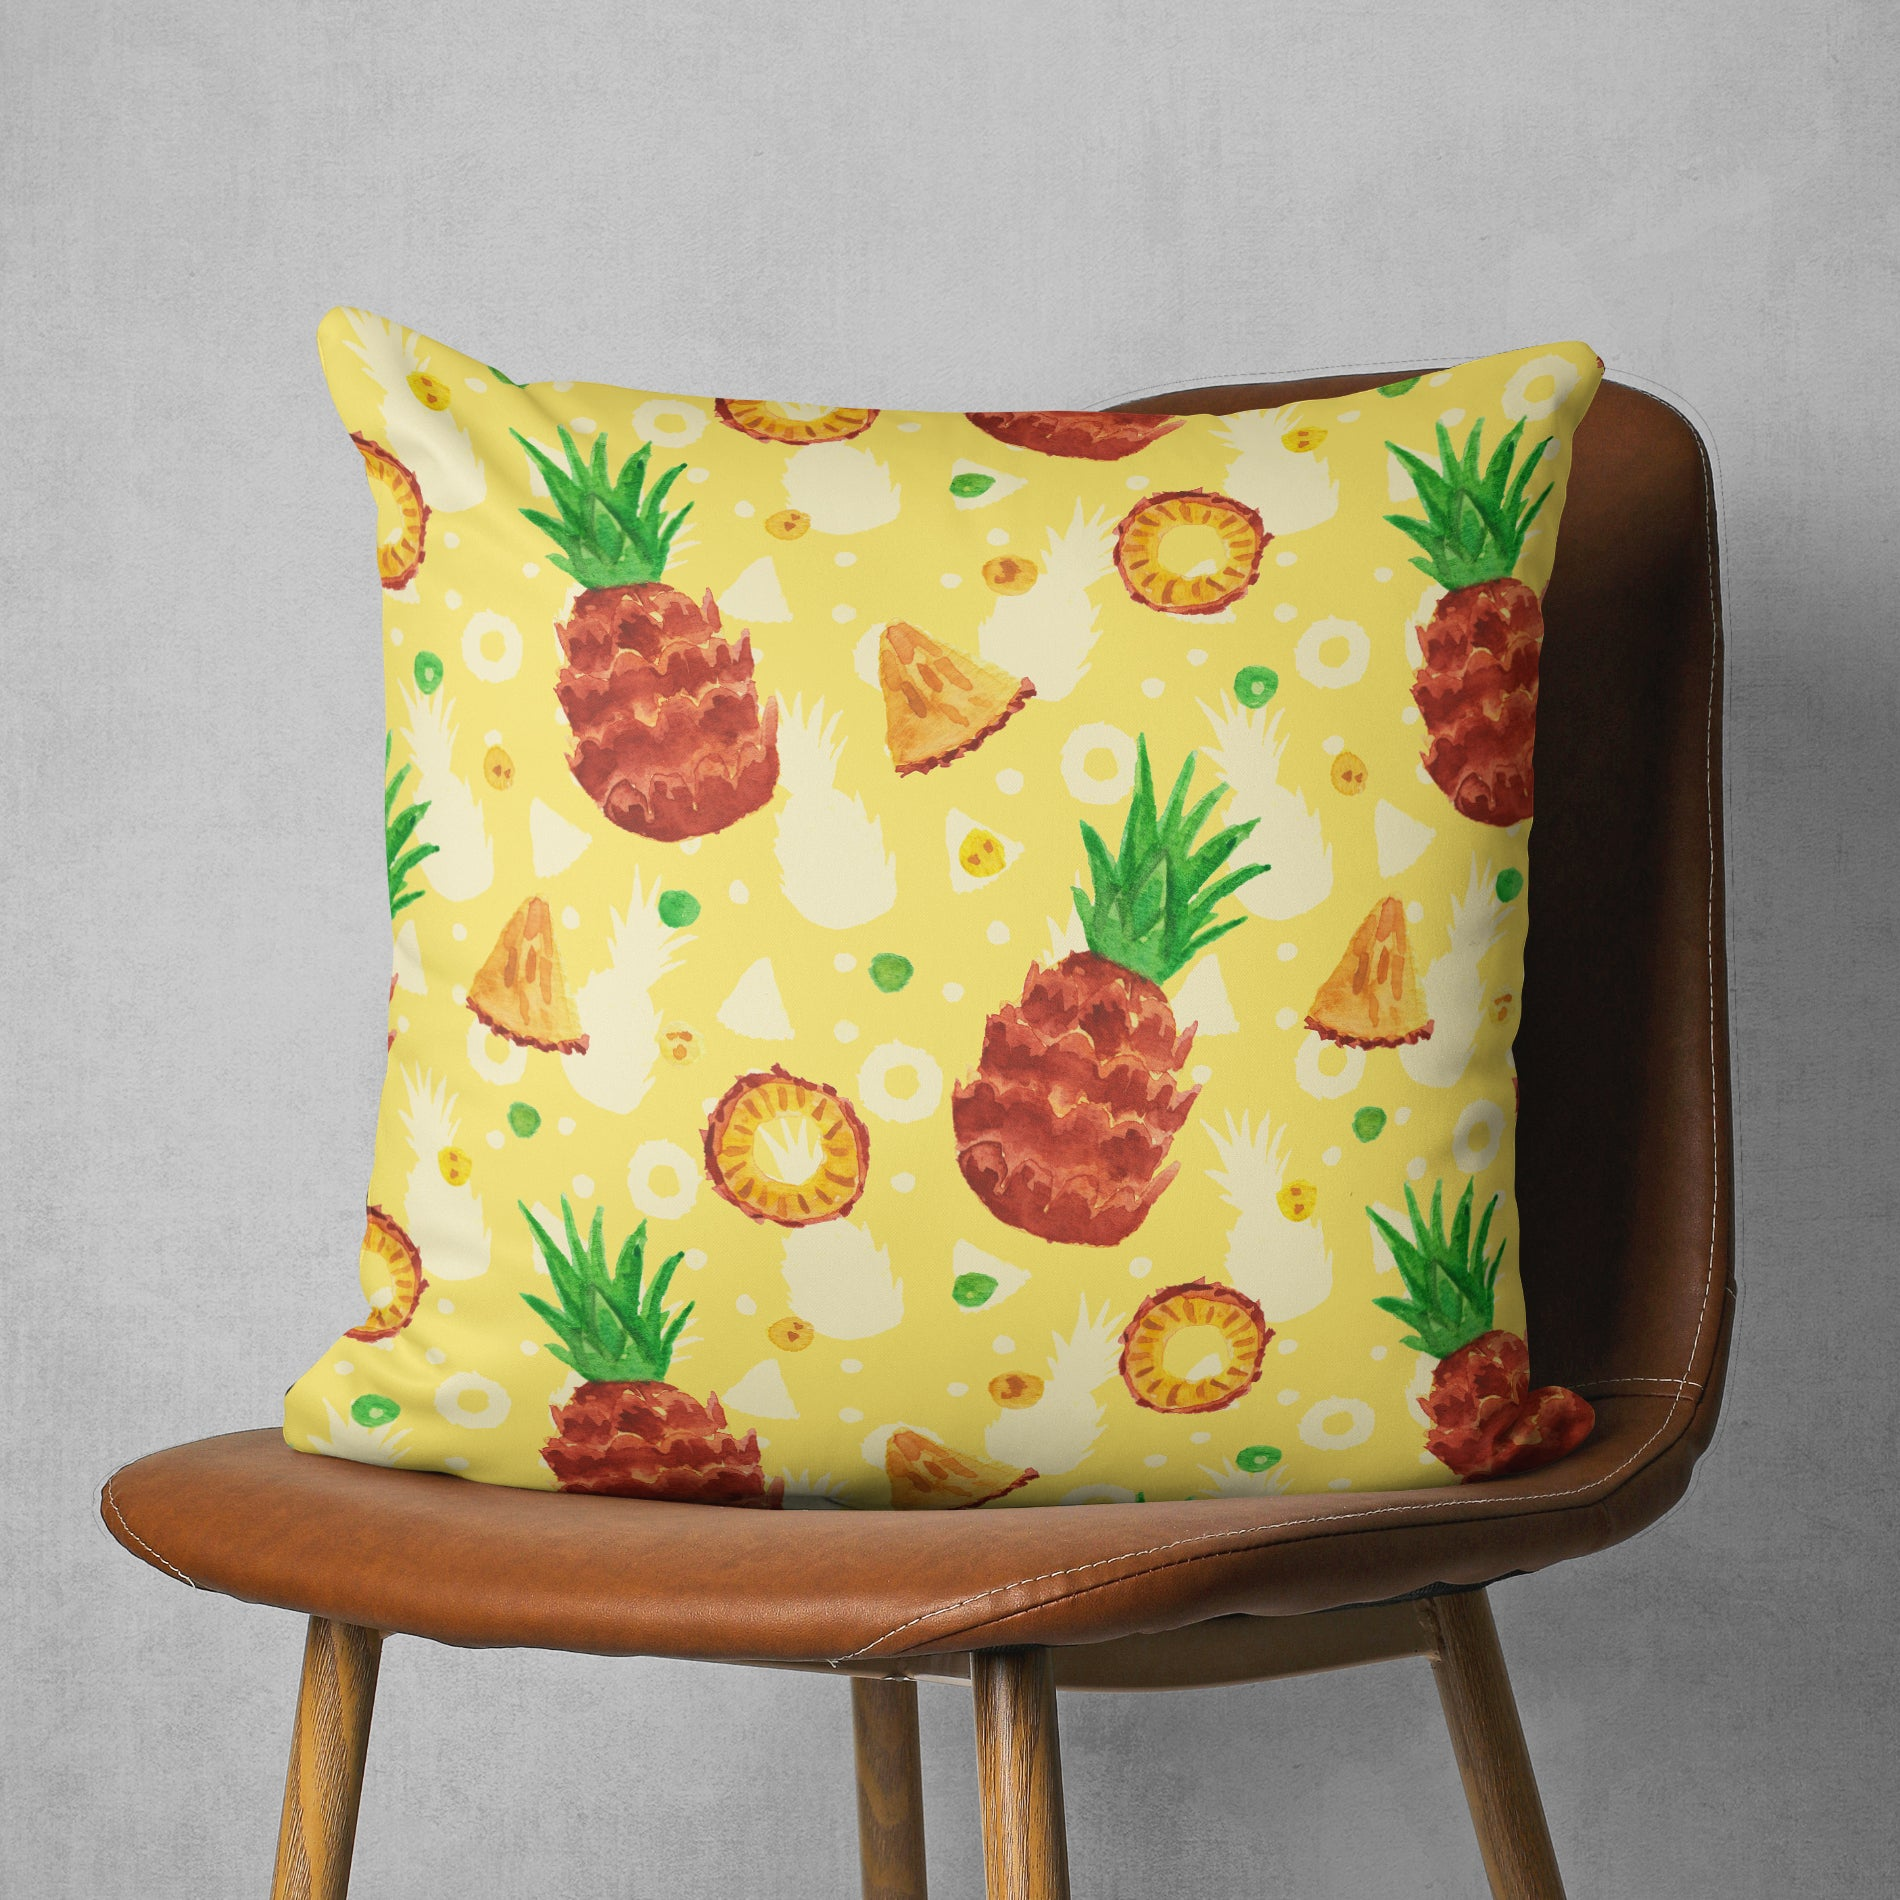 Pineapple Pillow - Summer Fruit Cushion, Yellow | Brandless Artist